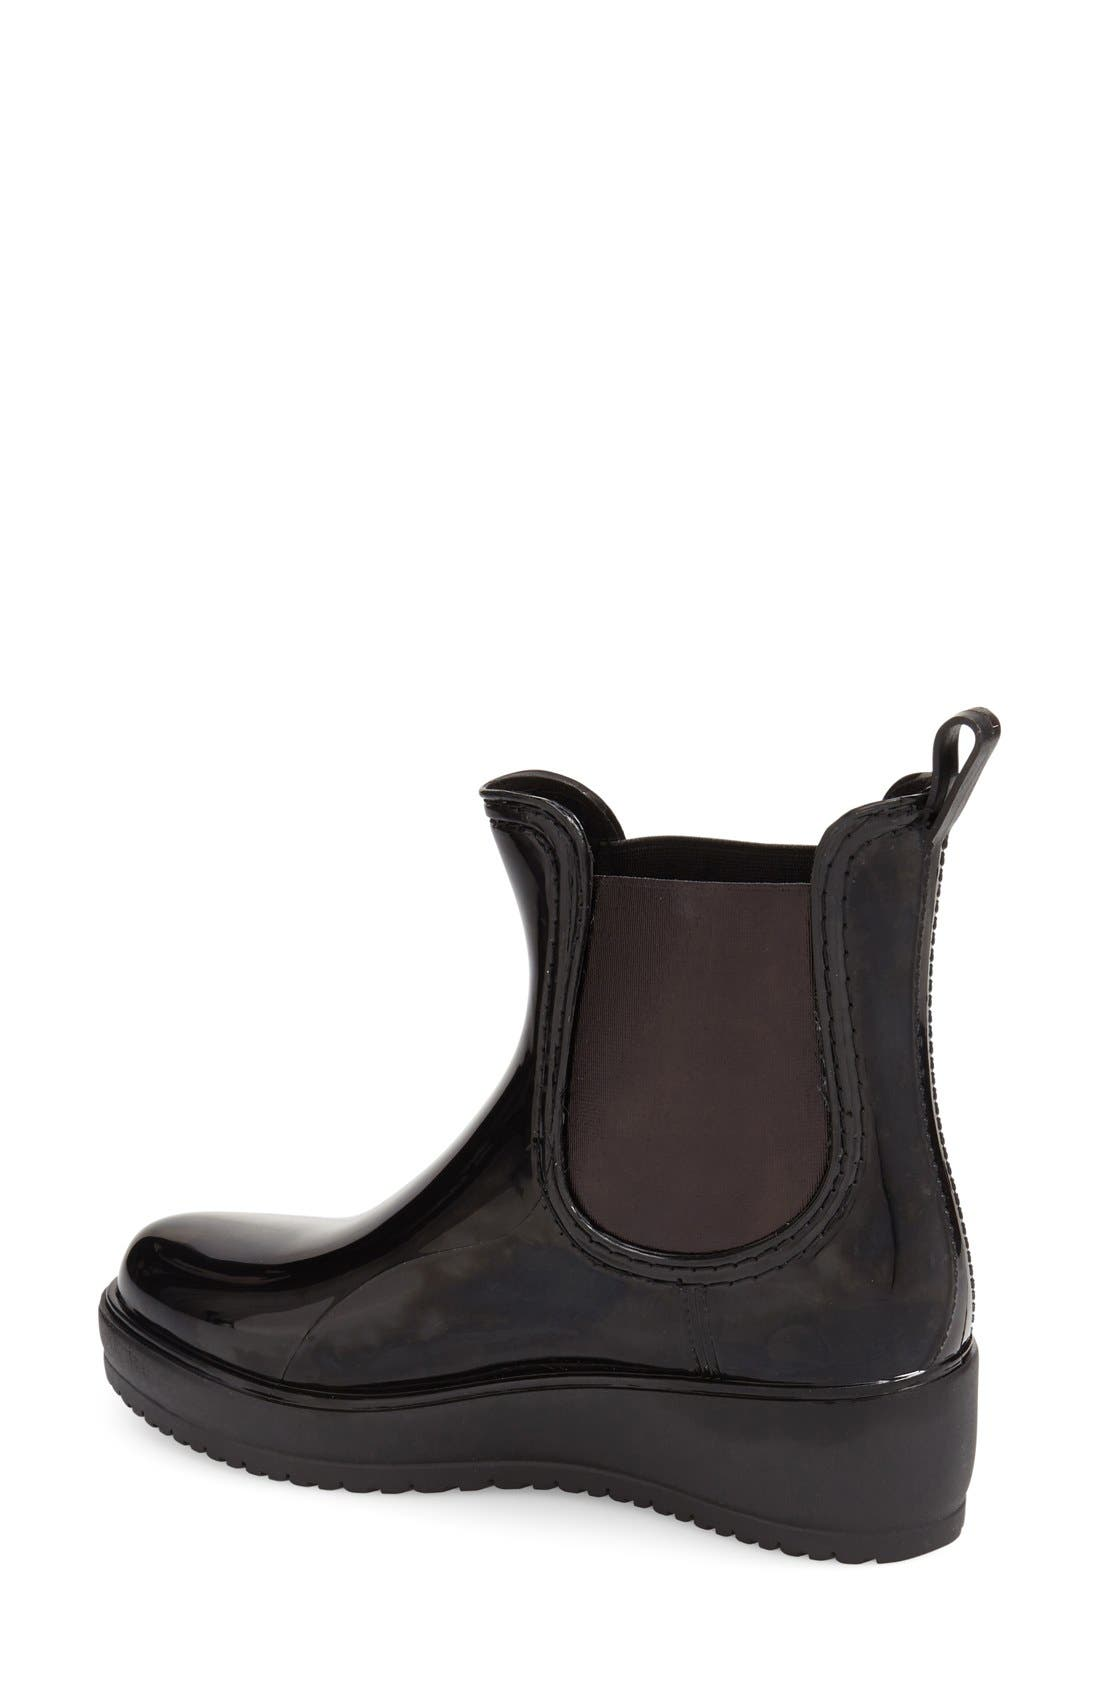 Alternate Image 2  - däv 'Wakefield' Waterproof Platform Rain Chelsea Boot (Women)